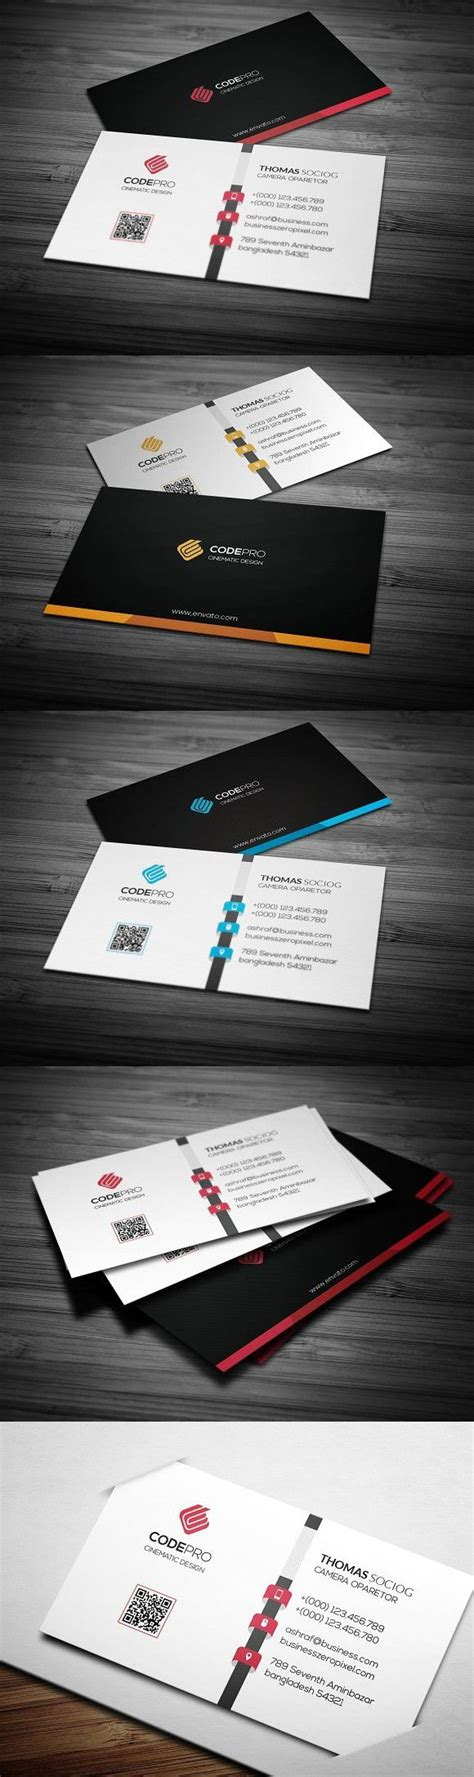 code pro business card business card templates business